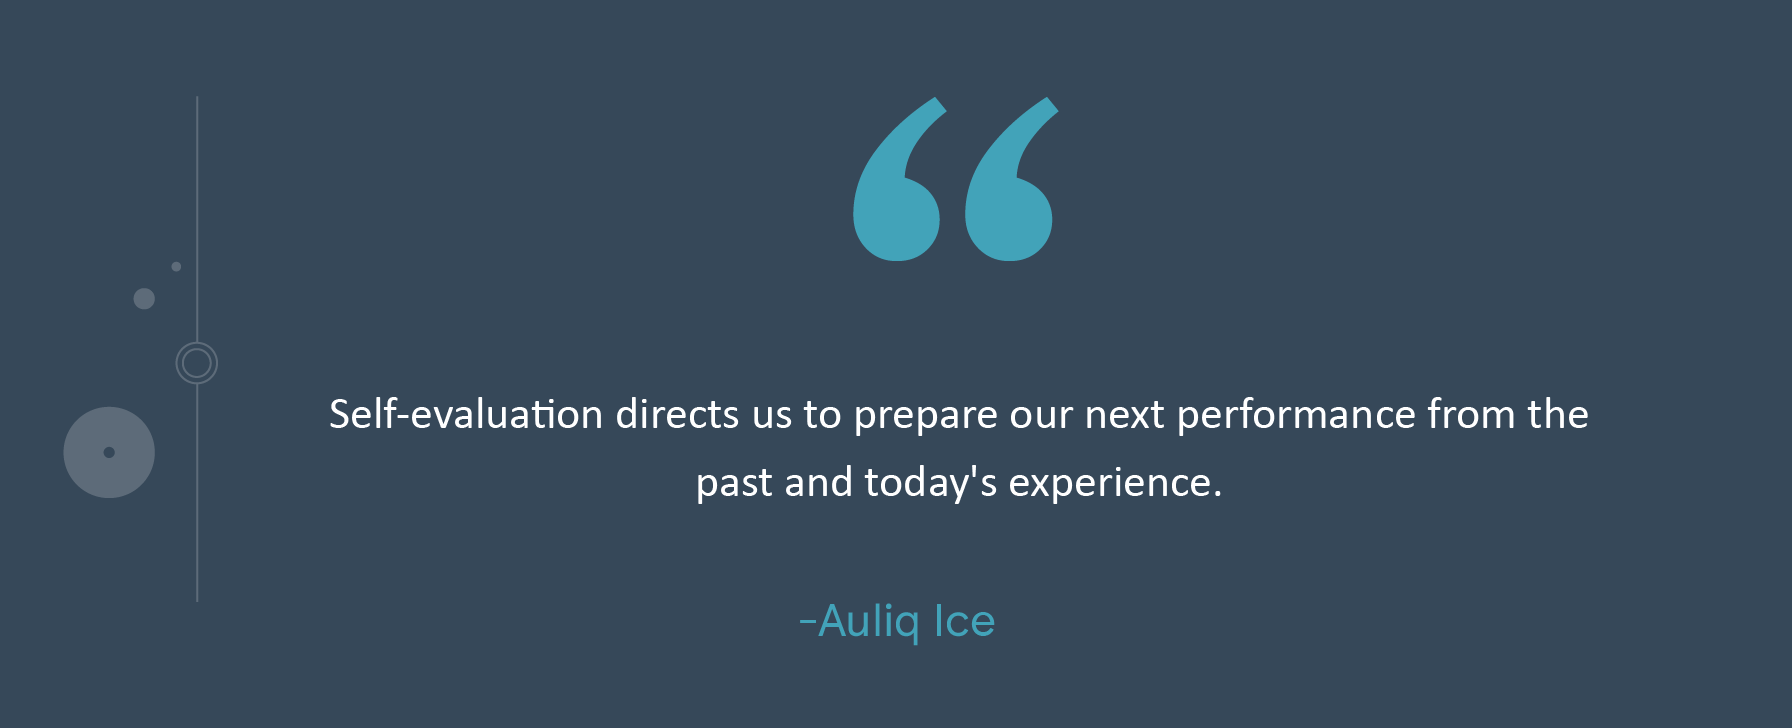 Self-evaluation directs us to prepare our next performance from the past and today's experience. -Auliq Ice